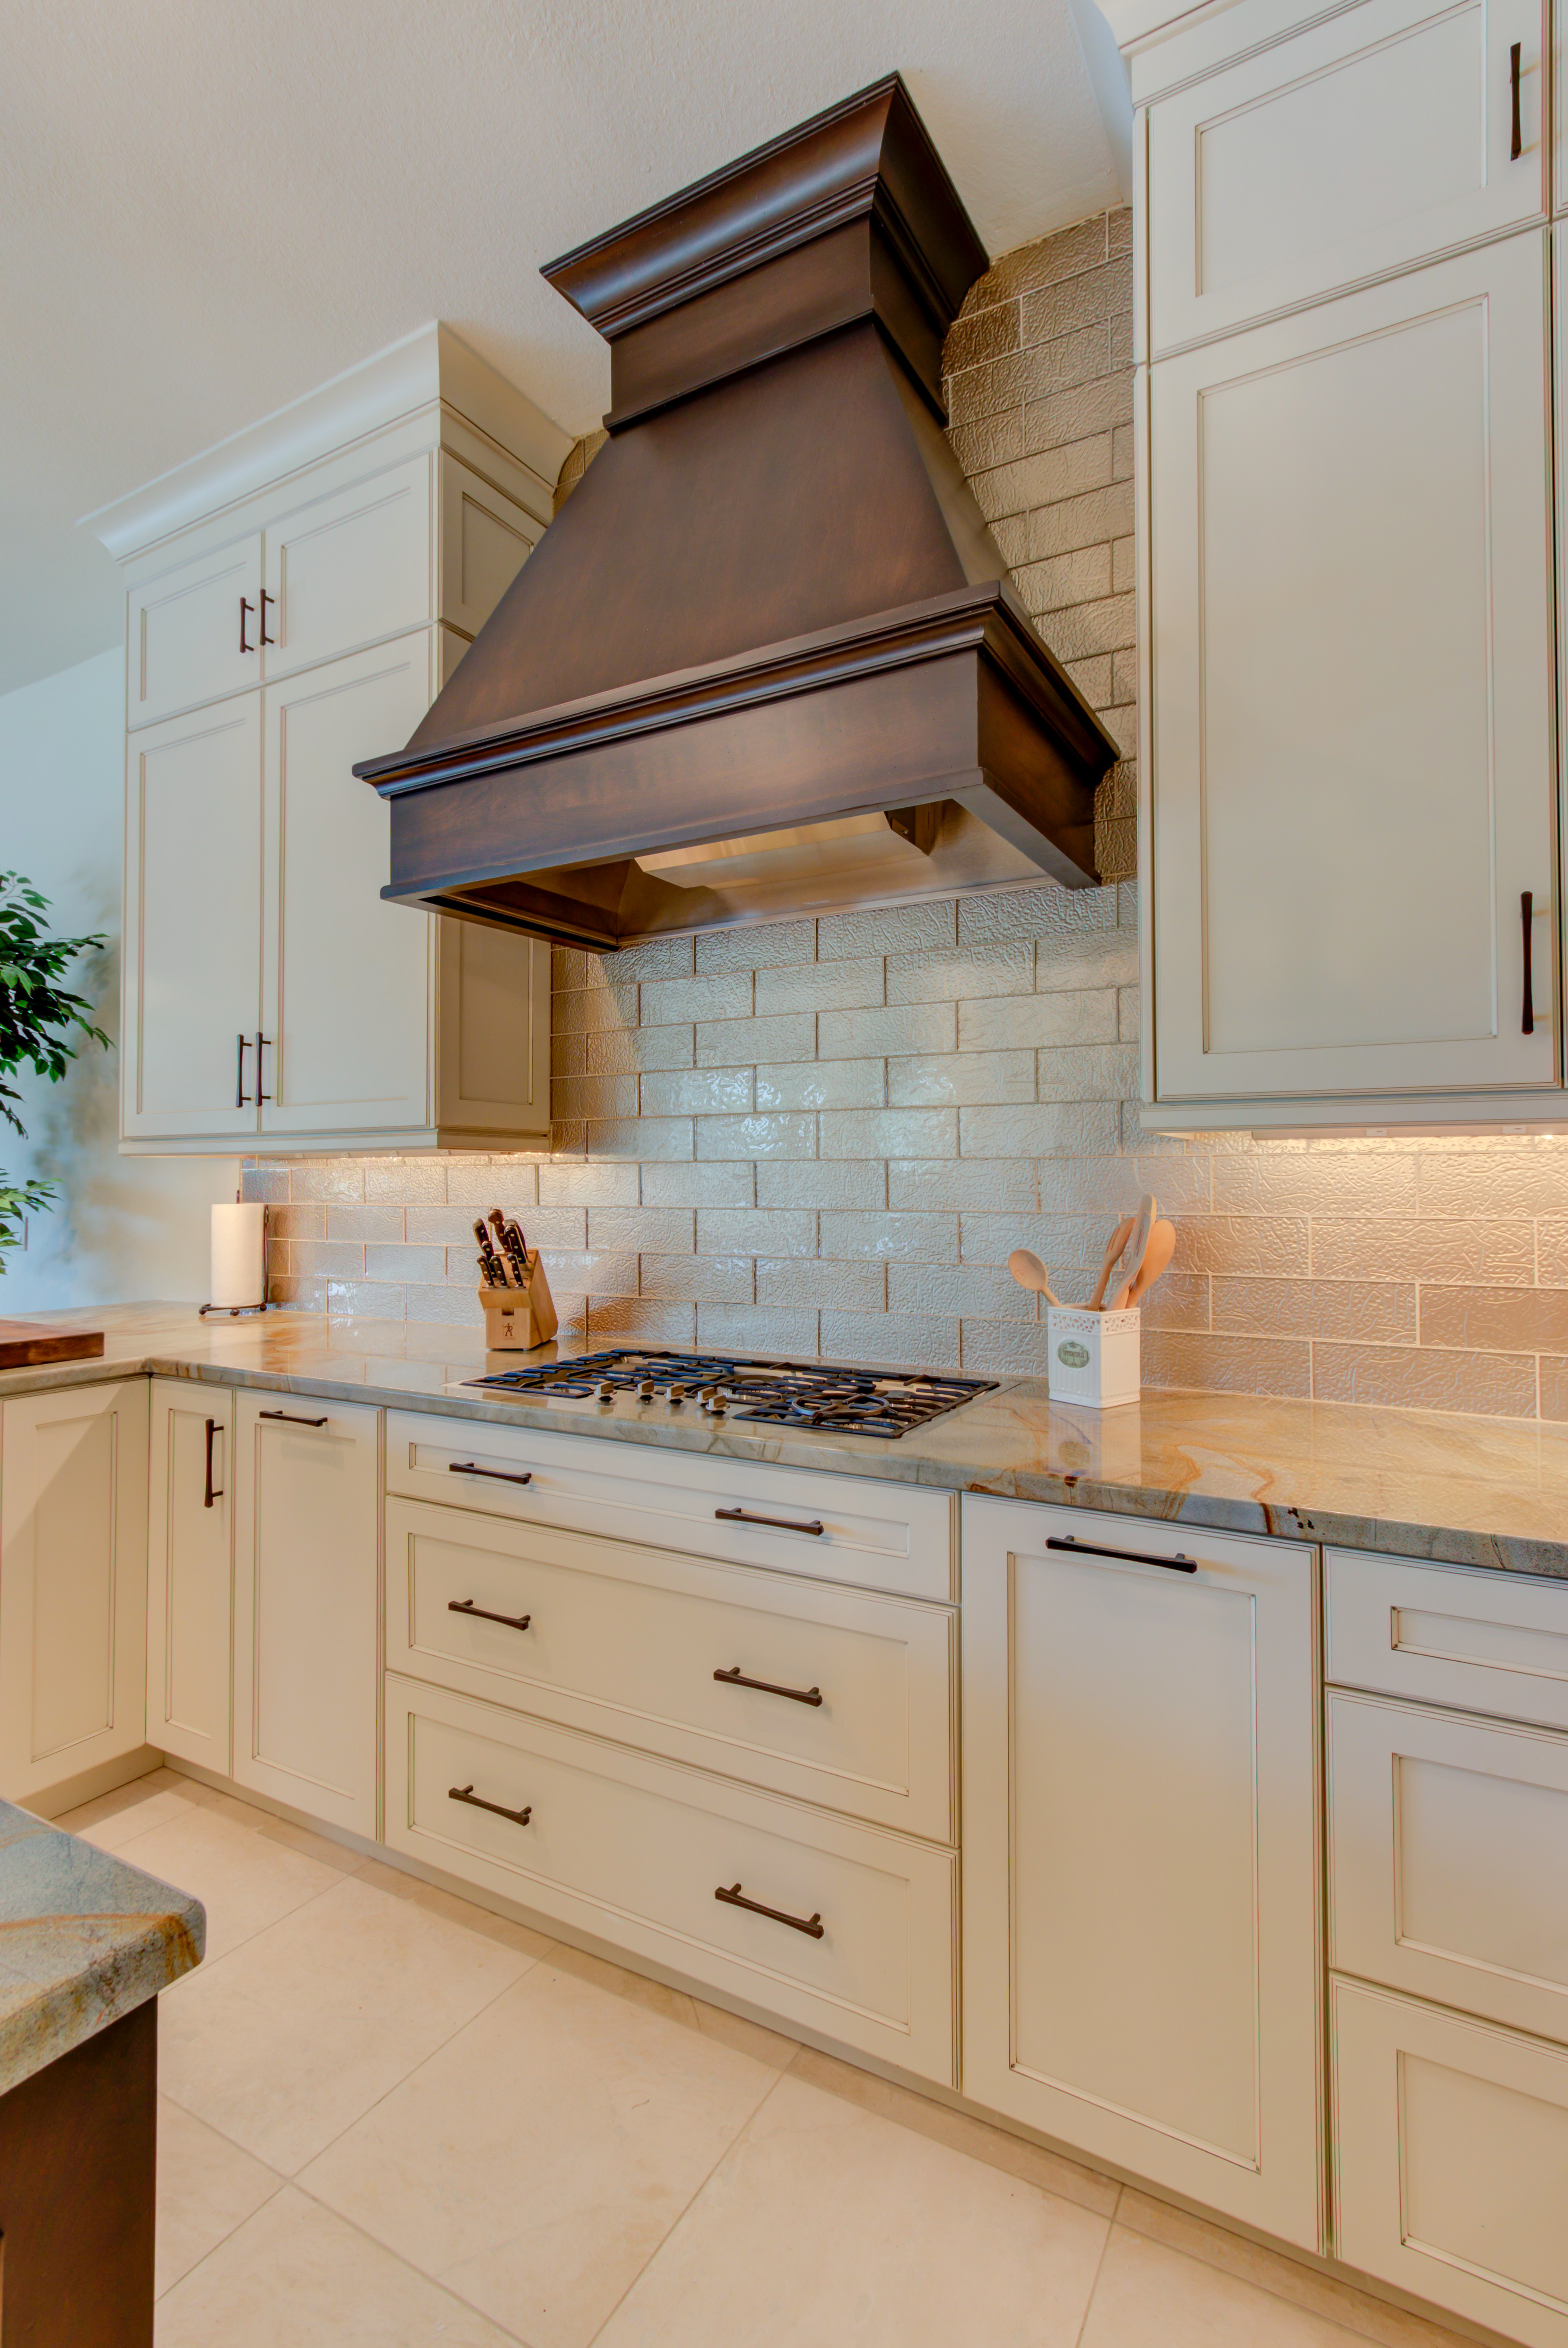 newport brass kitchen faucet island with sink for sale tommy bahama - cabinet genies and ...